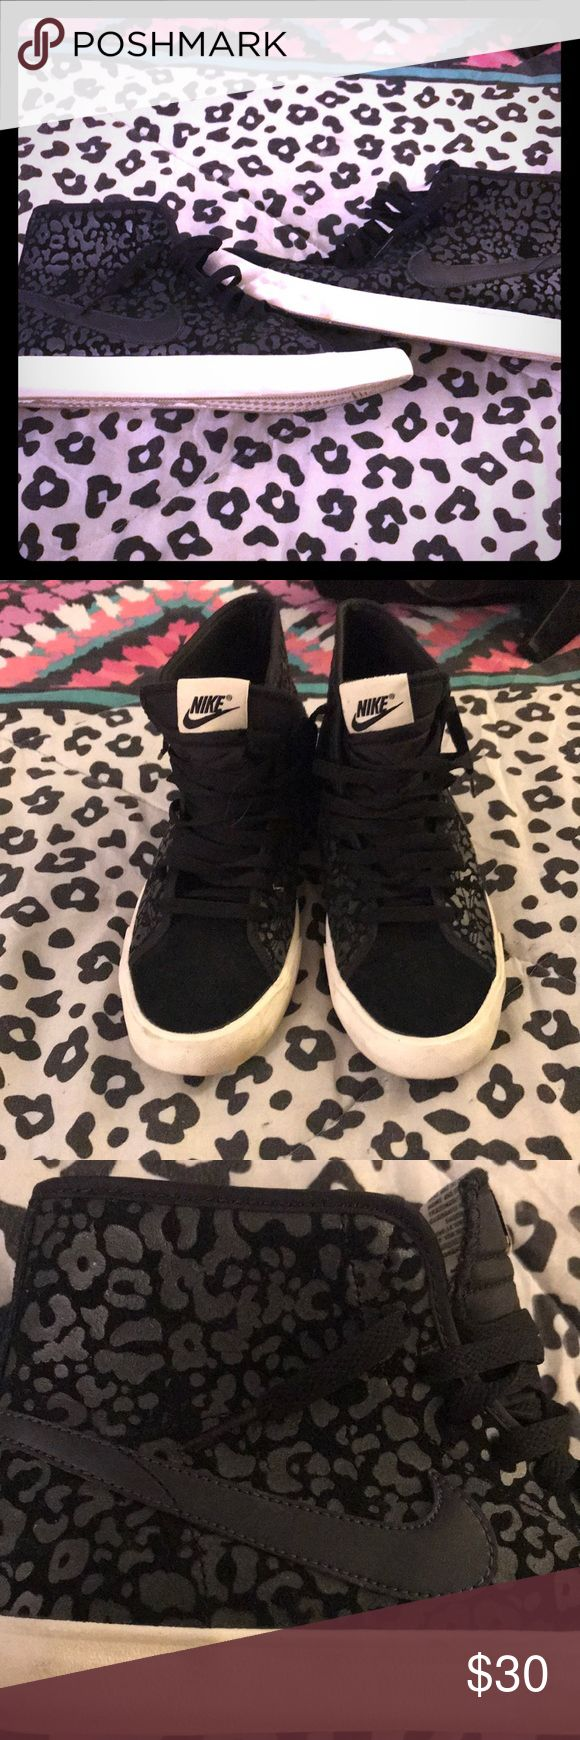 Nike Leopard high top size 8 Slightly worn fun nike leopard high tops. Size 8. Taking reasonable offers Nike Shoes Sneakers